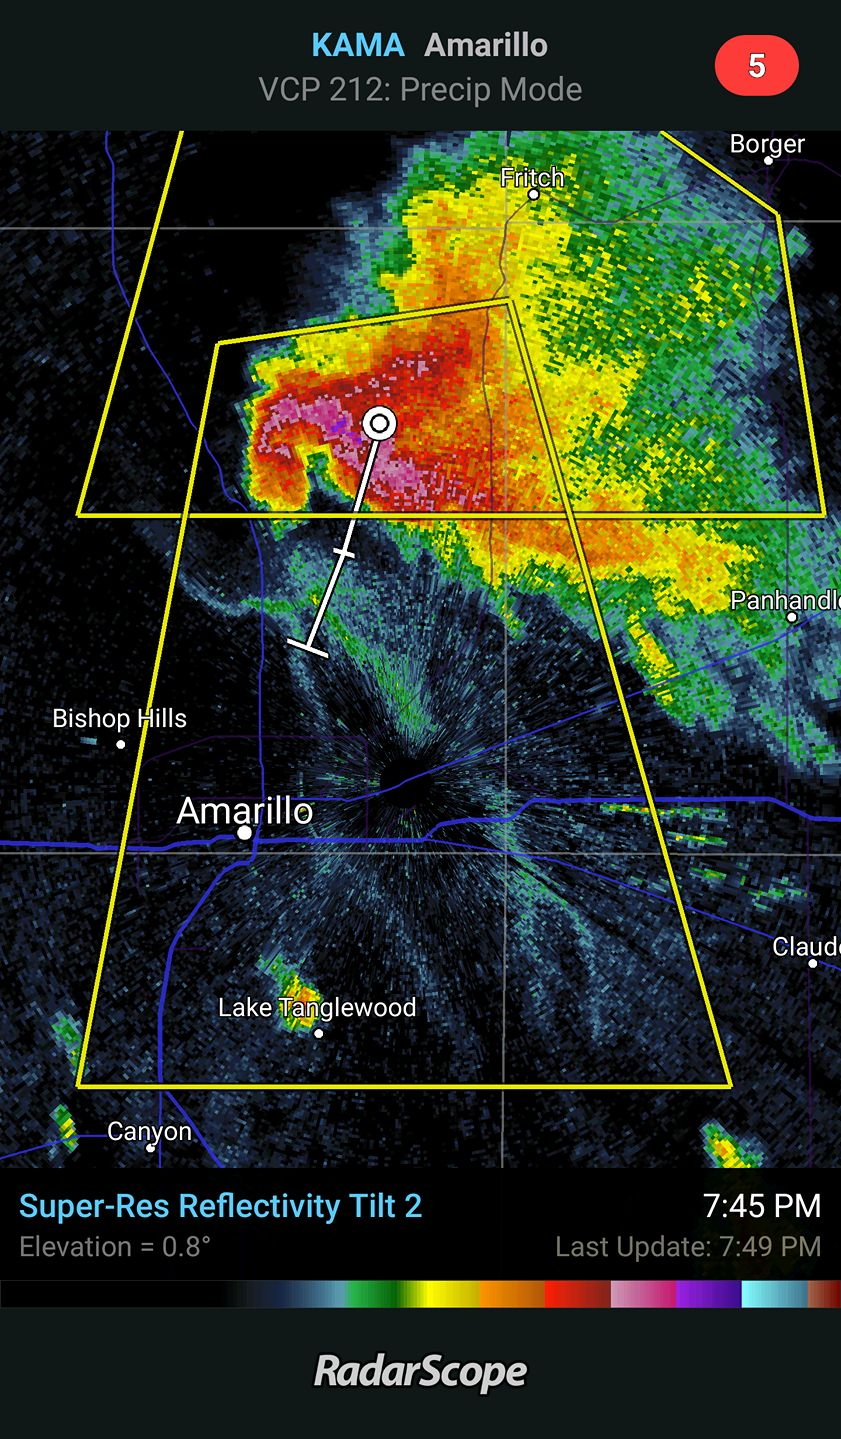 RadarScope image of a classic supercell